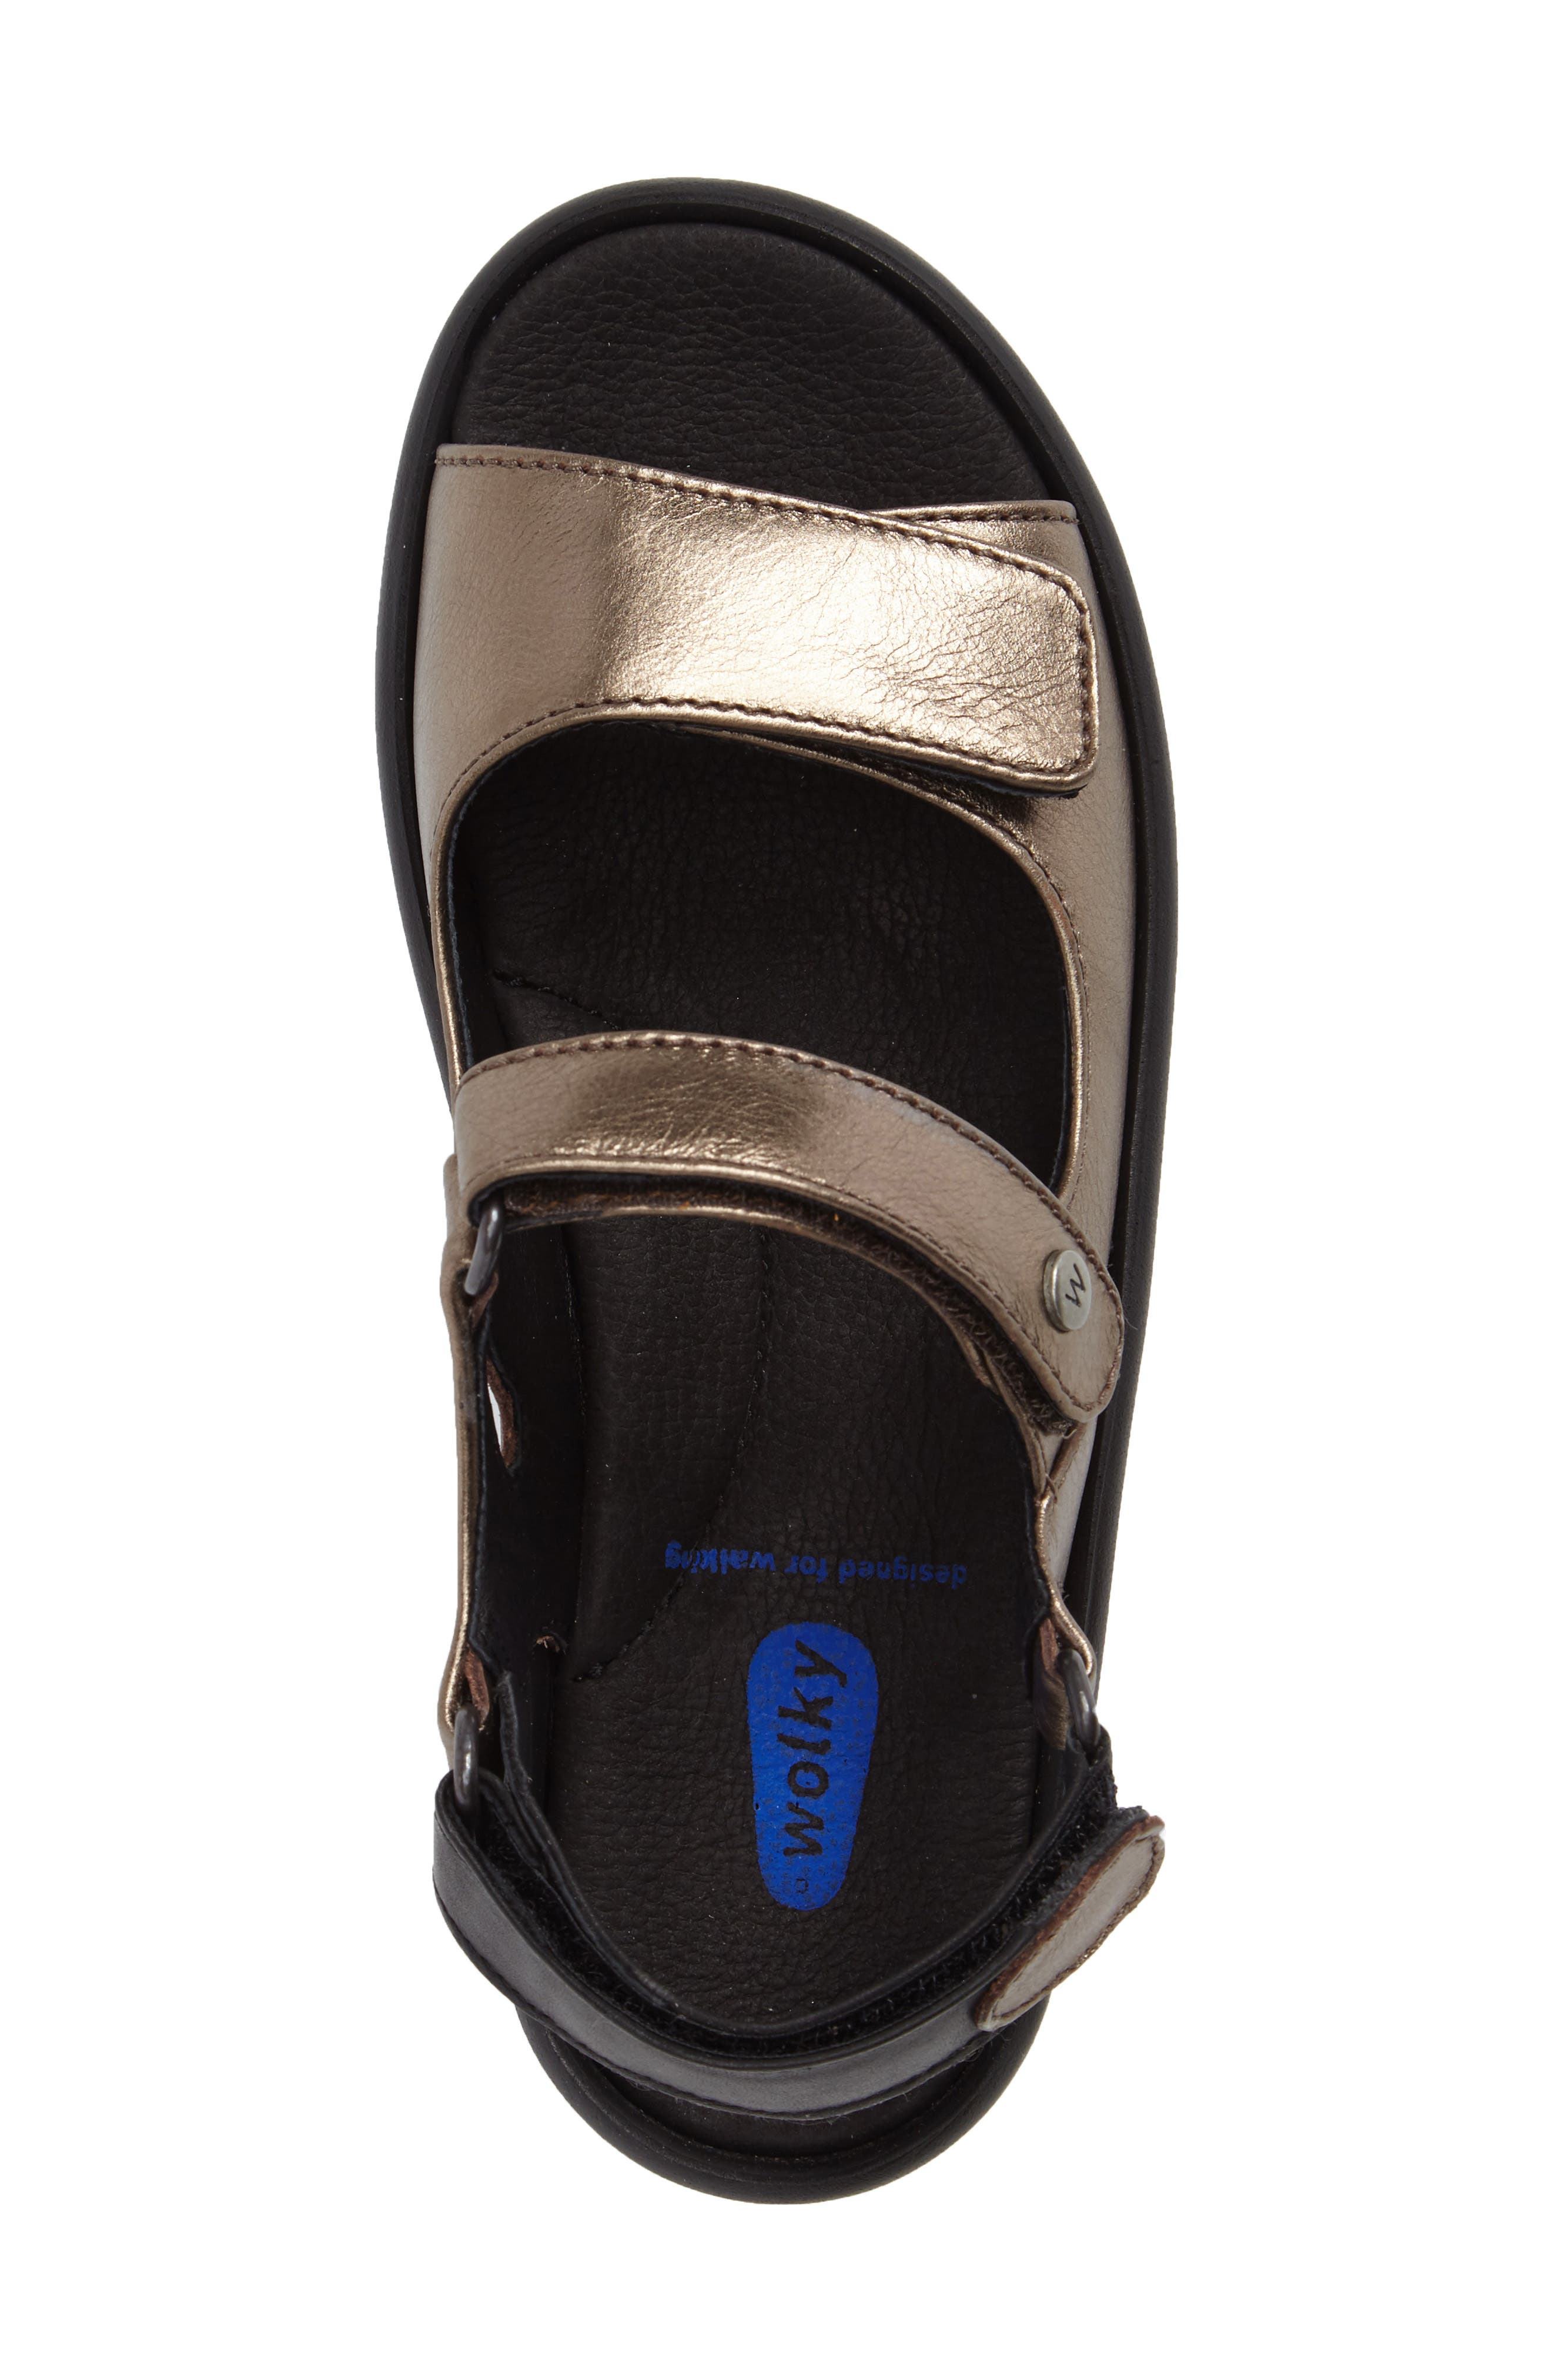 Rio Sandal,                             Alternate thumbnail 5, color,                             Bronze Metallic Leather